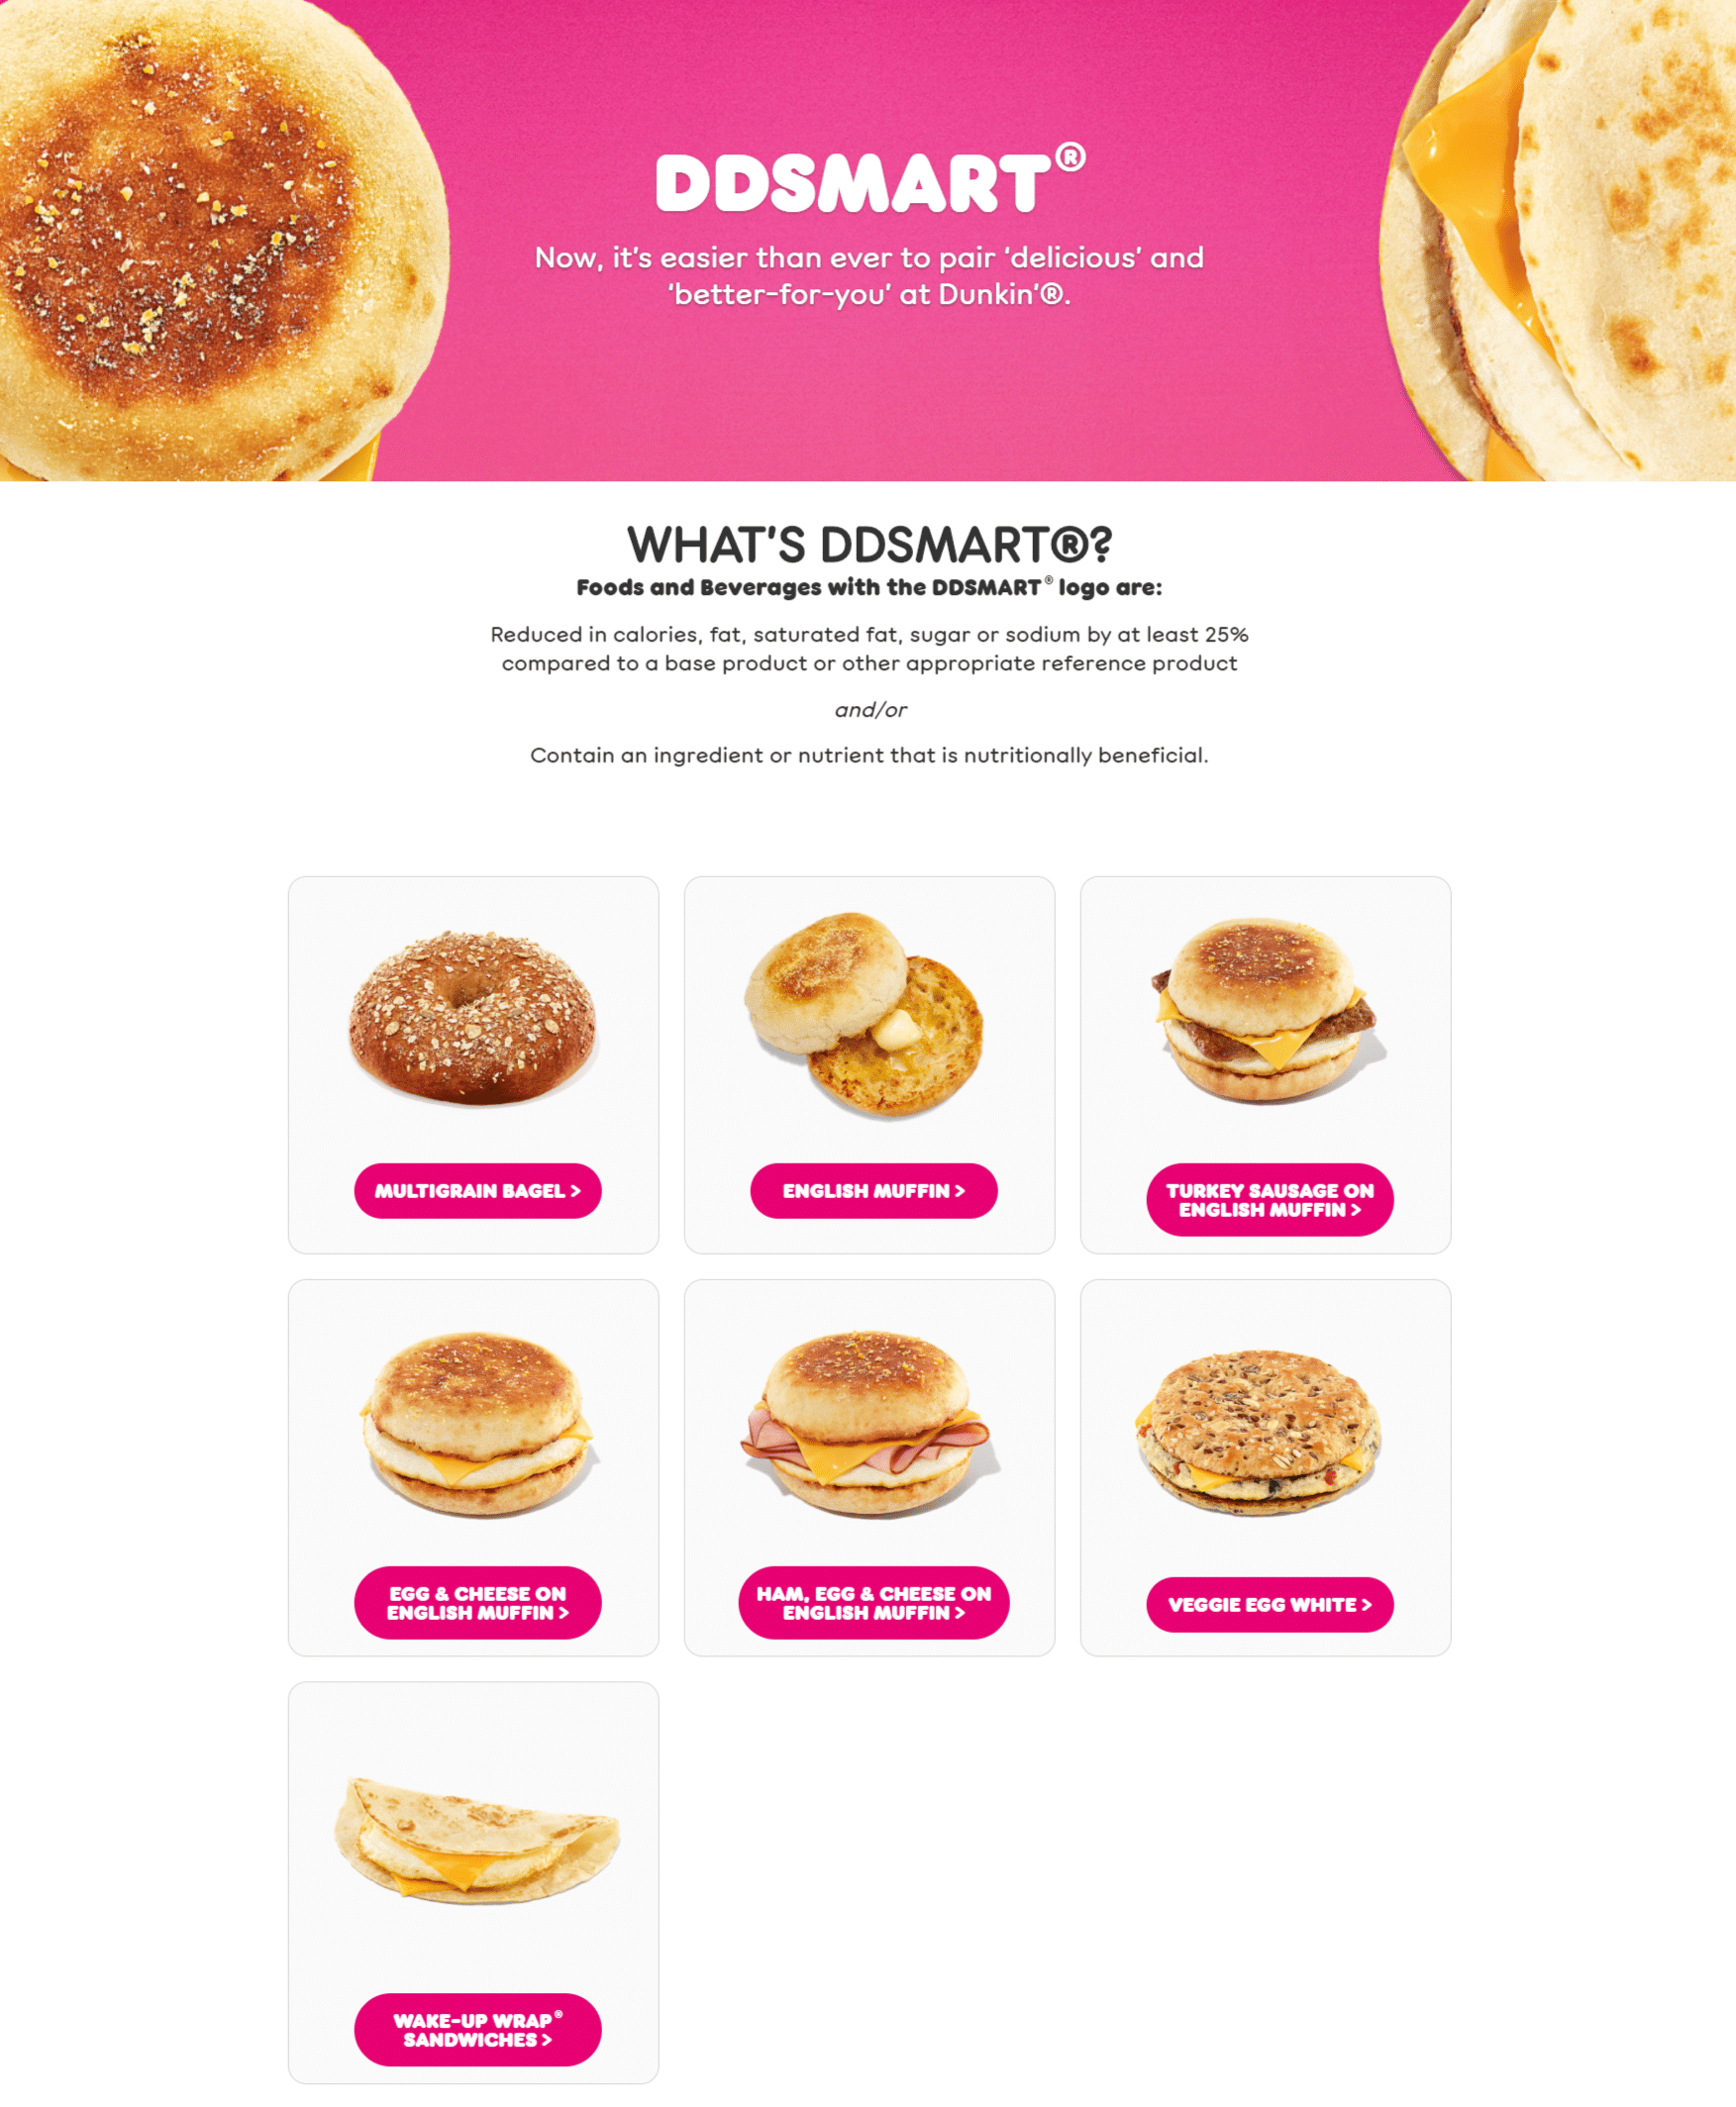 Dunkin' Donuts Menu And Specials